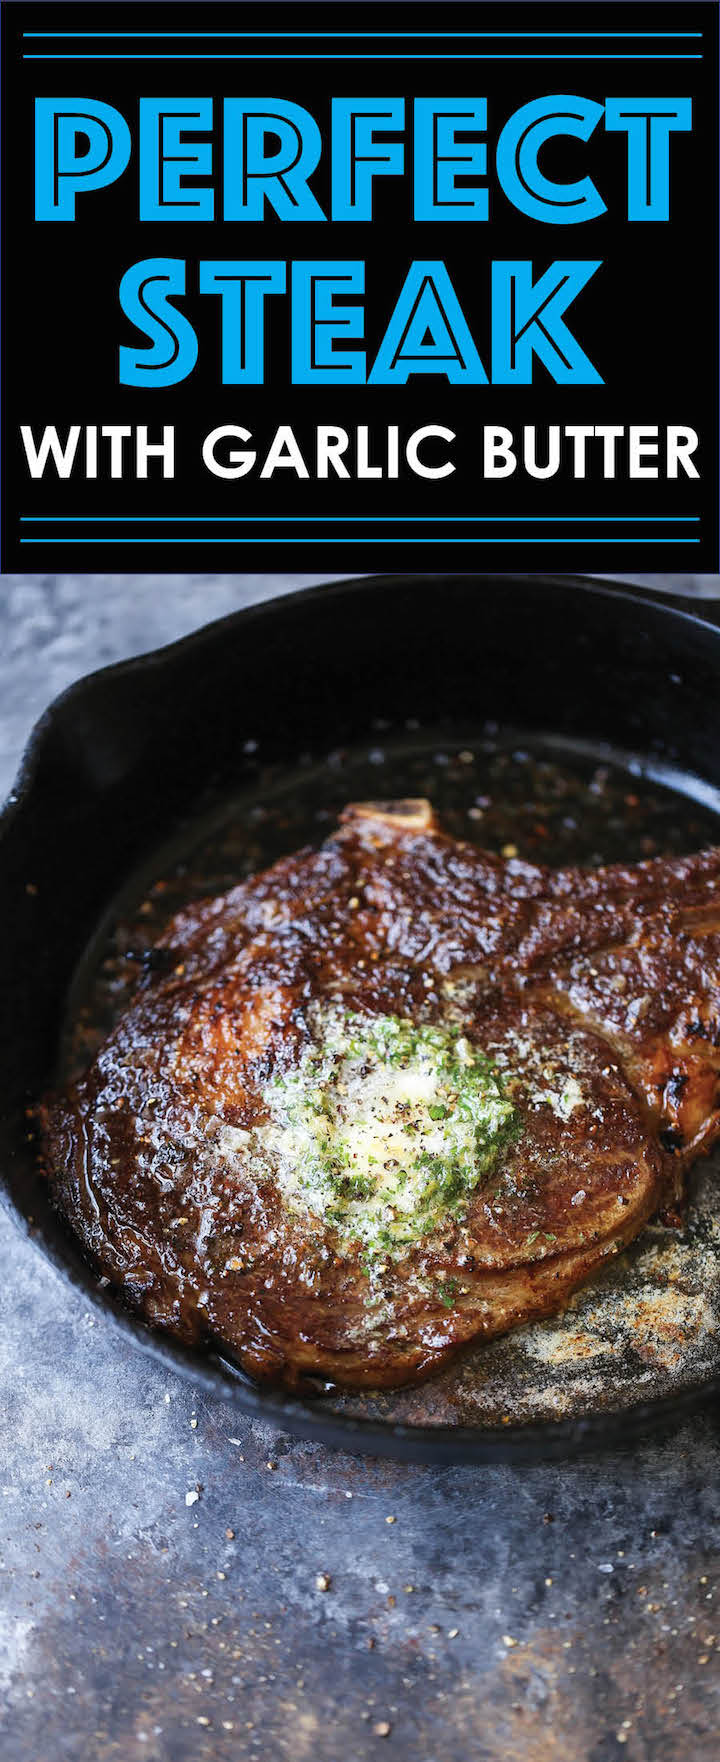 The Perfect Steak with Garlic Butter - Here are my tips and tricks - I promise though - it's so easy! And that melted garlic butter on top is to die for!!!!